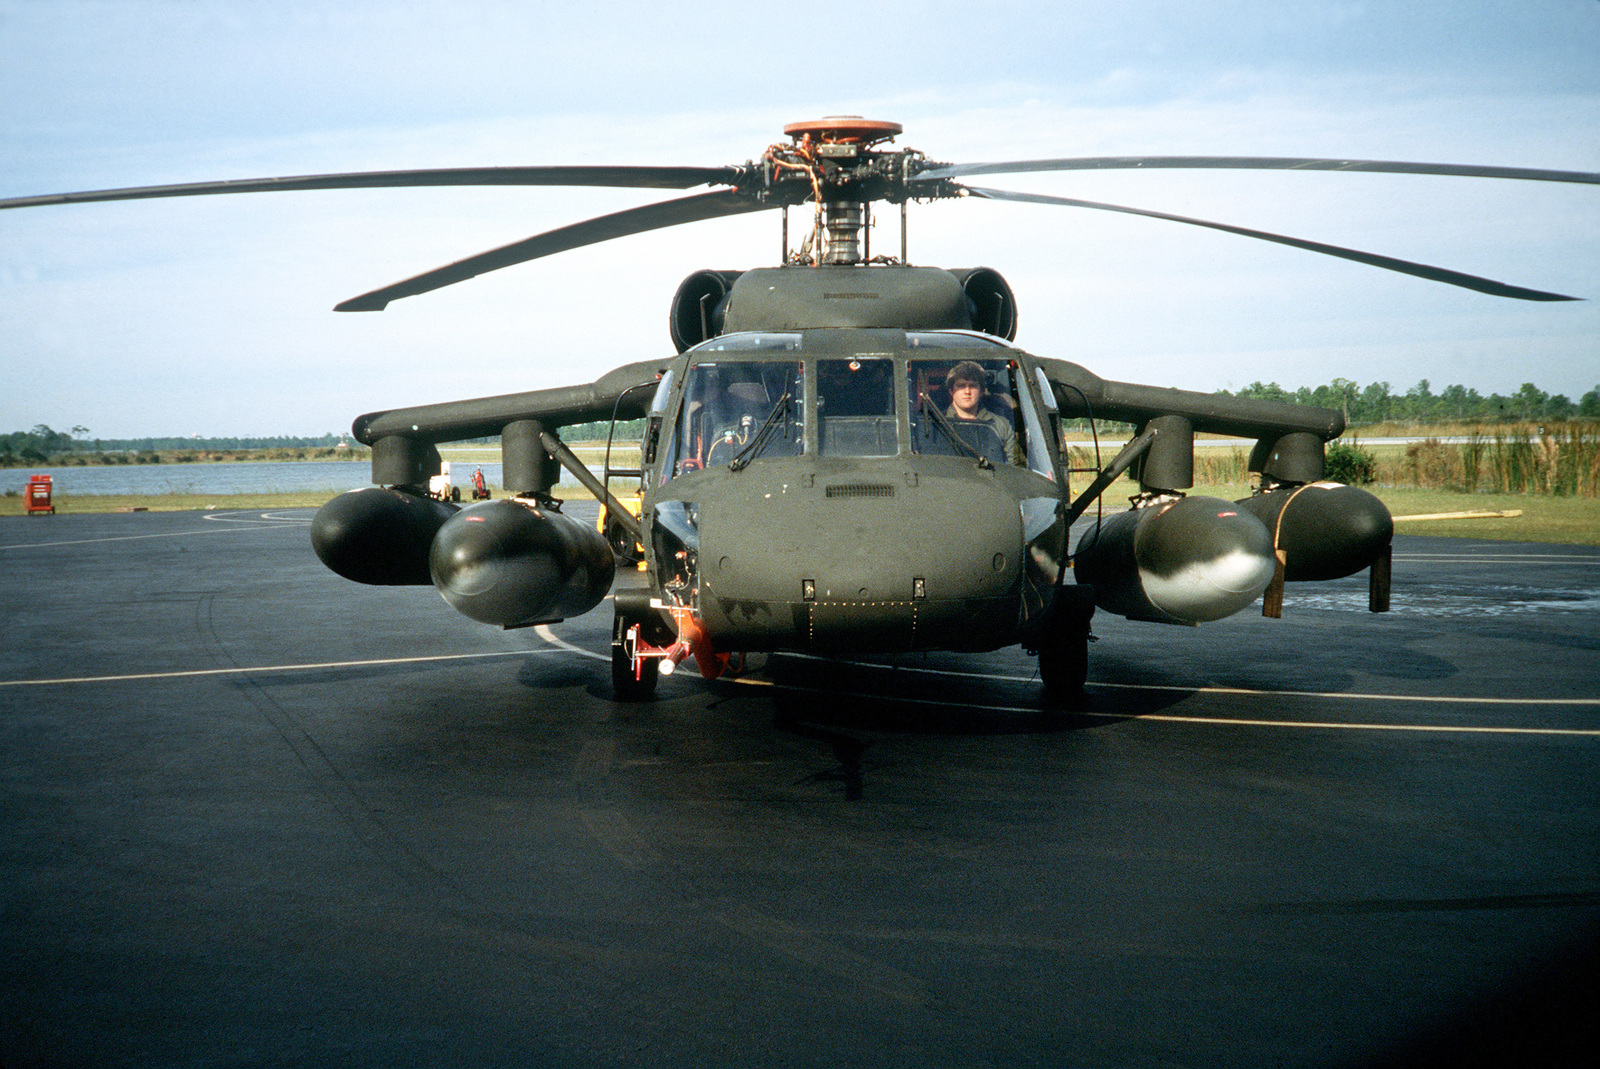 Front view of a UH-60L Black Hawk helicopter armed with